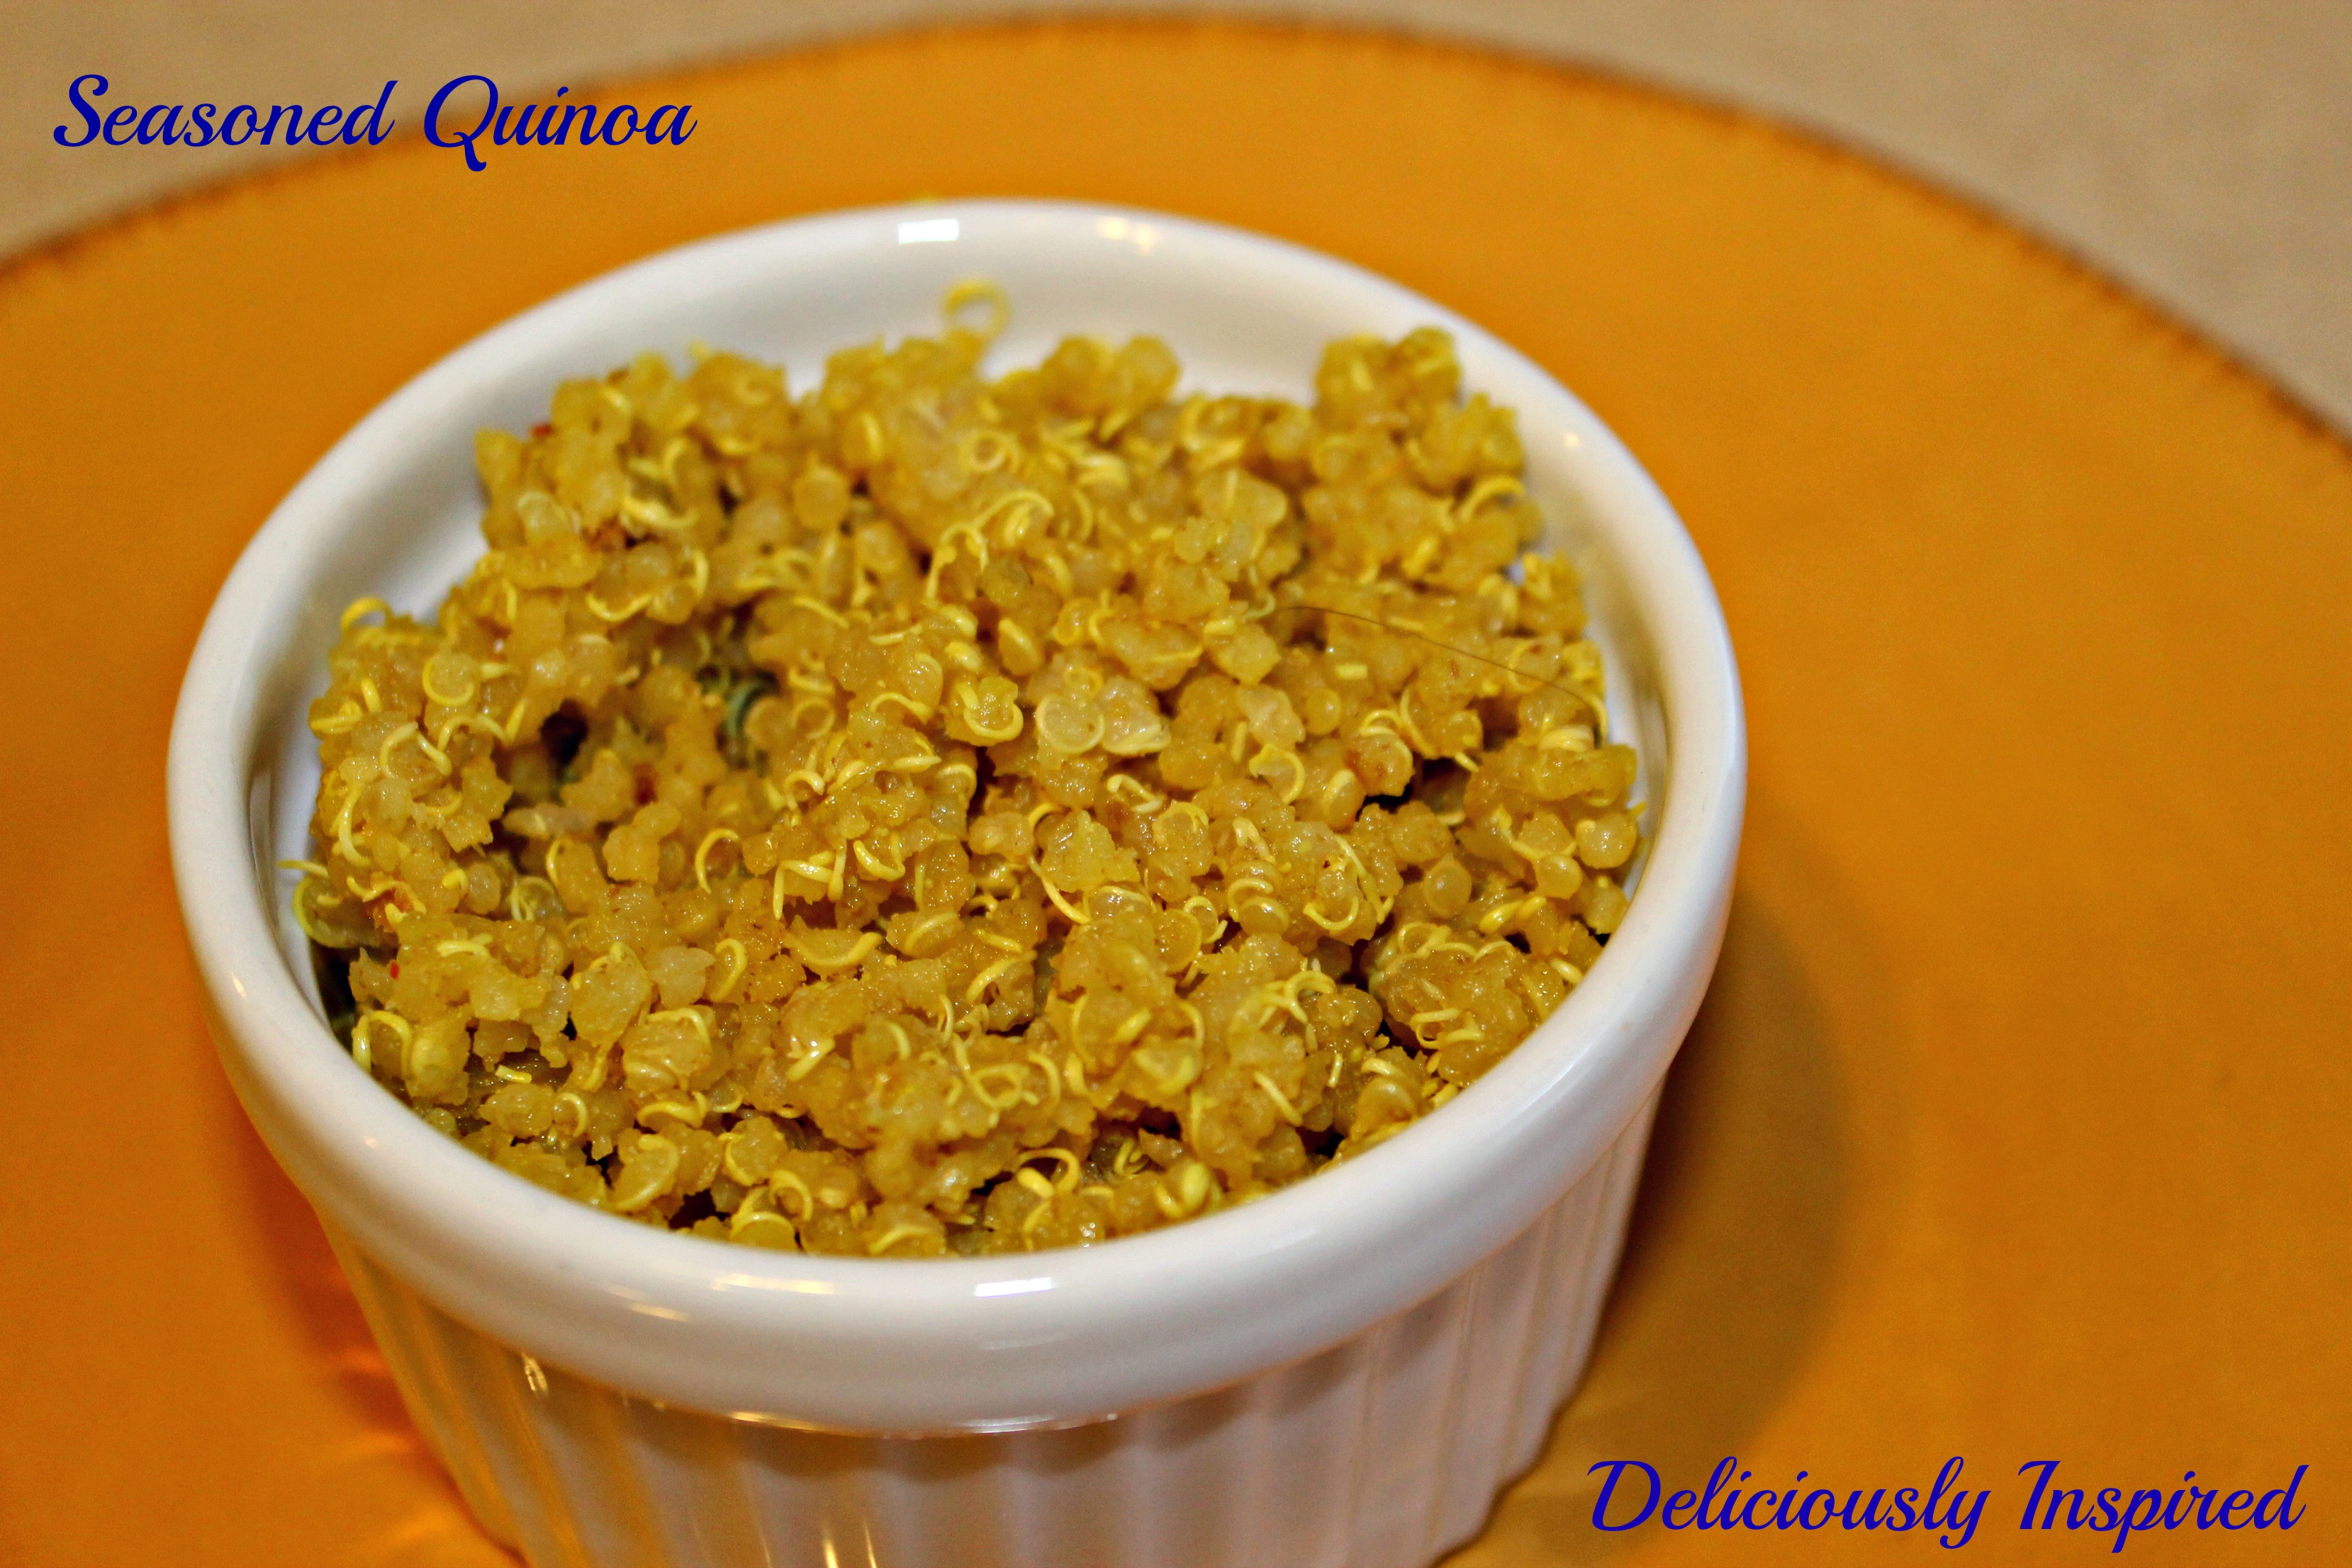 Seasoned Quinoa